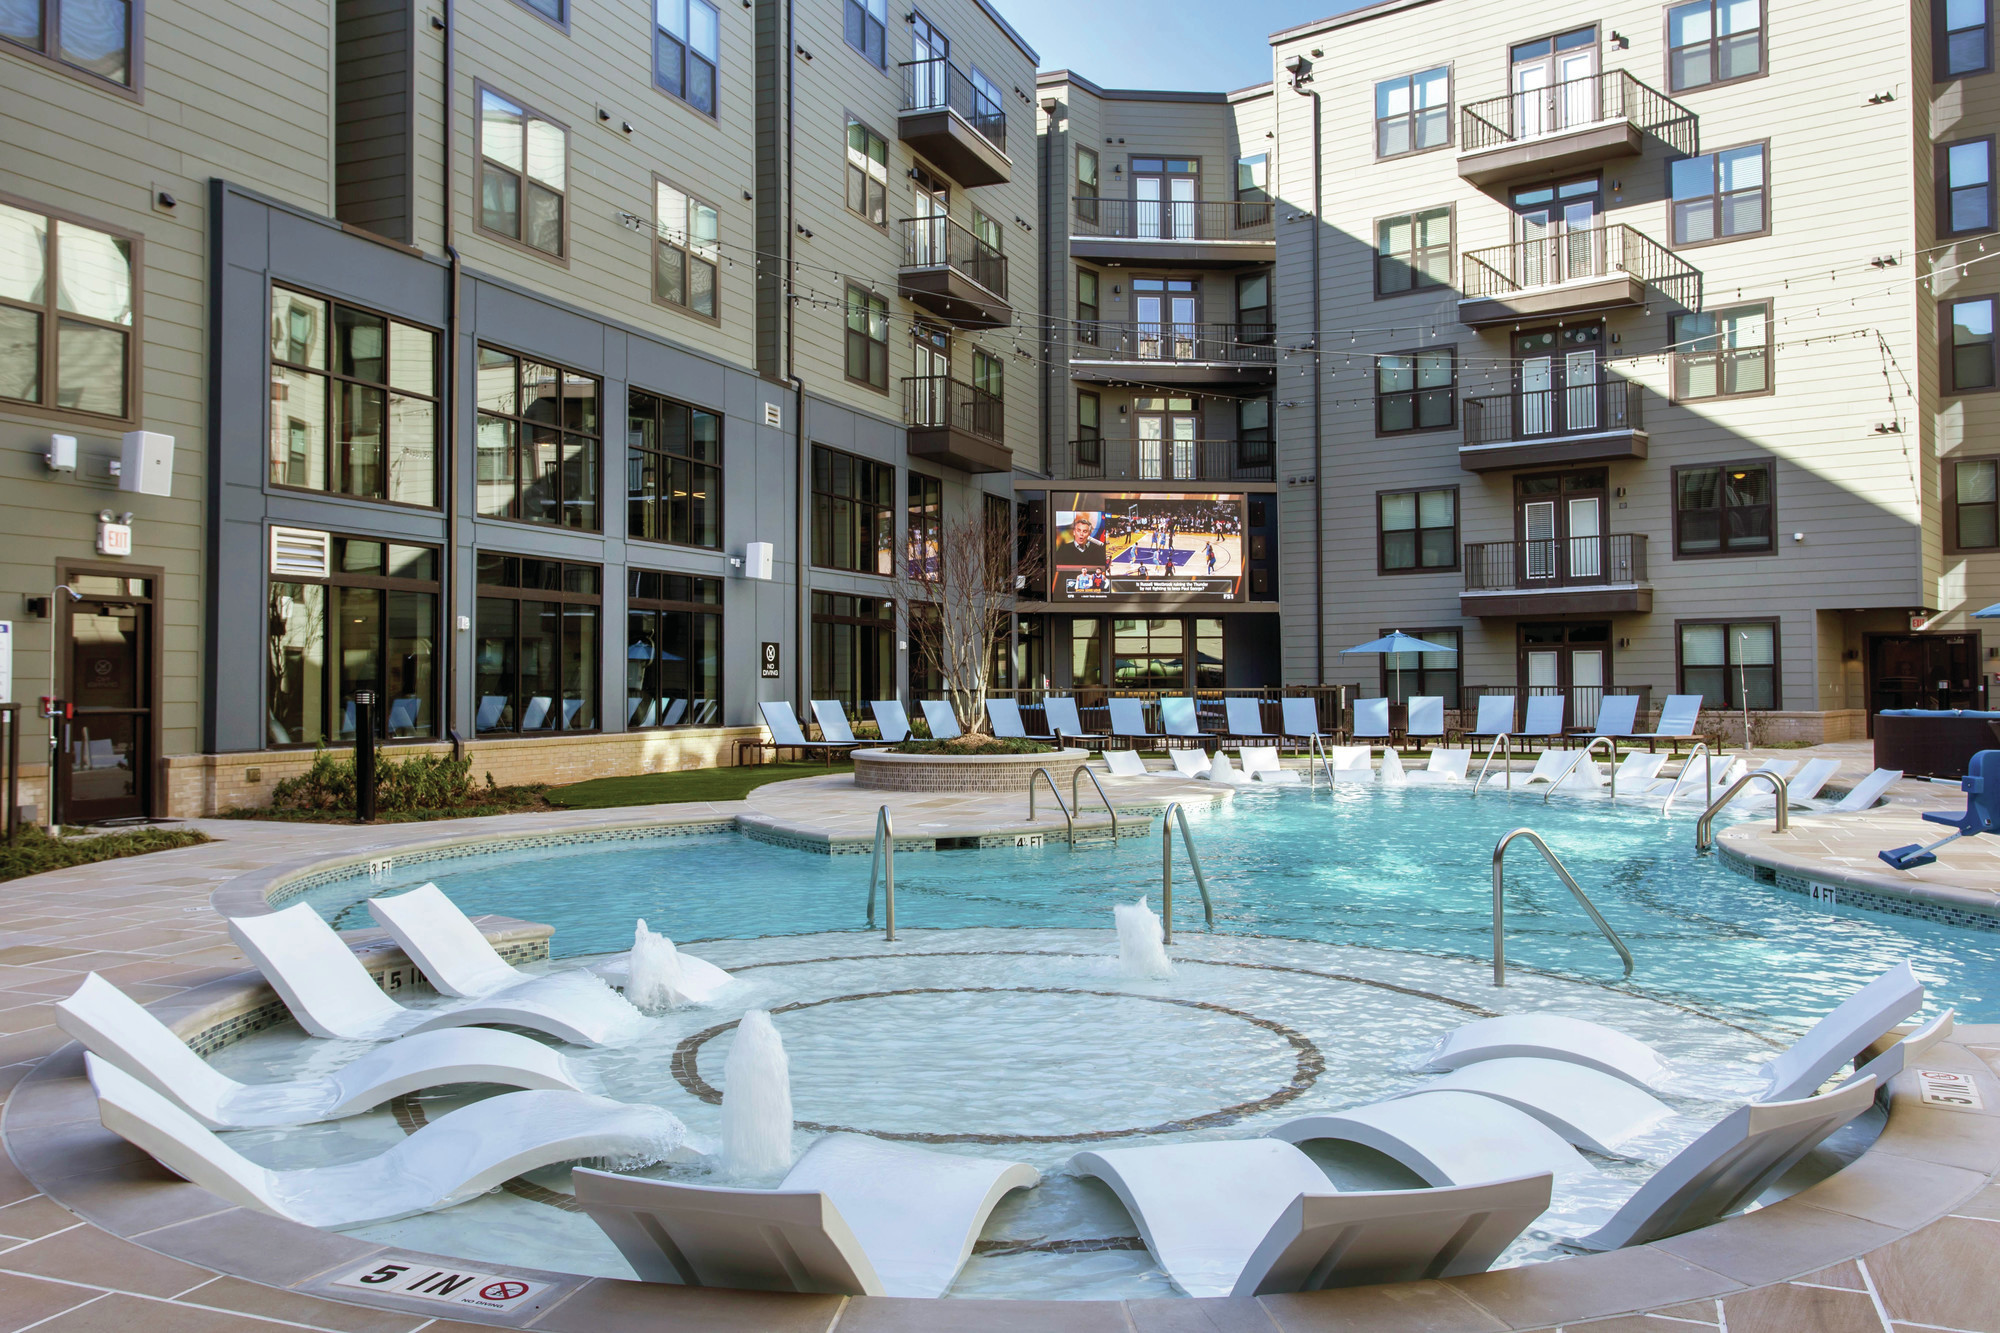 Clemson Student Housing Property Leaves No Luxury Behind